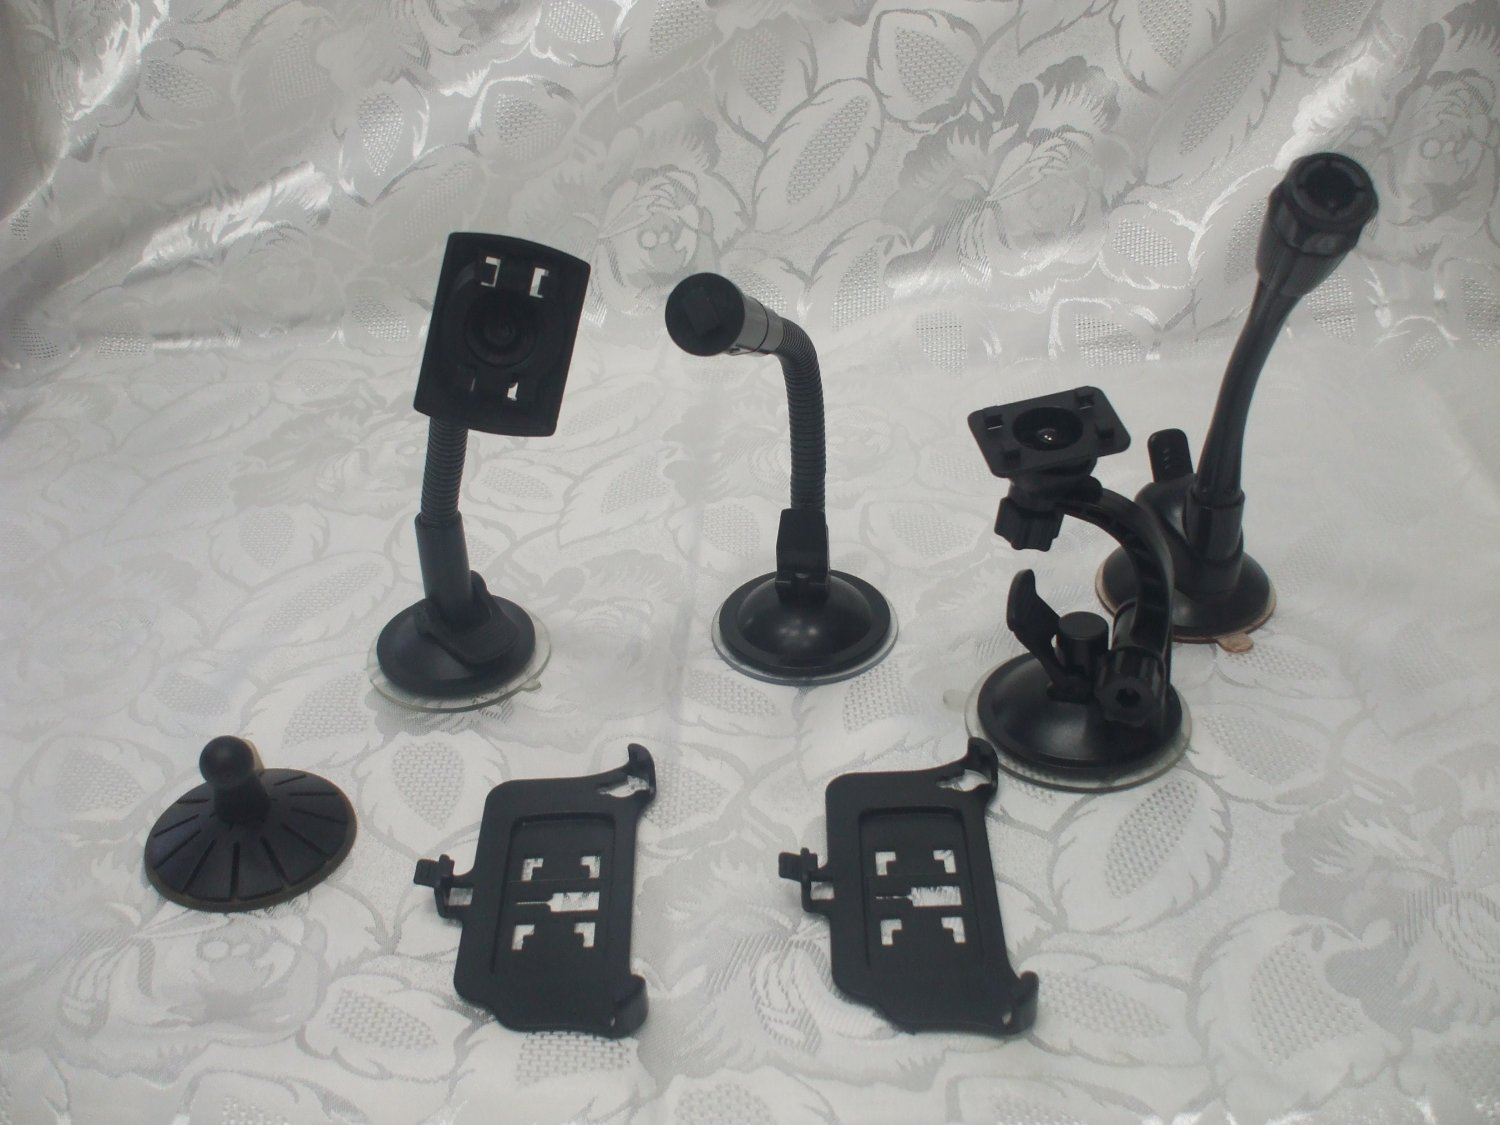 Lot 7 Pcs Hands Free Cell Phone Car Mount Holders. Replacement Parts